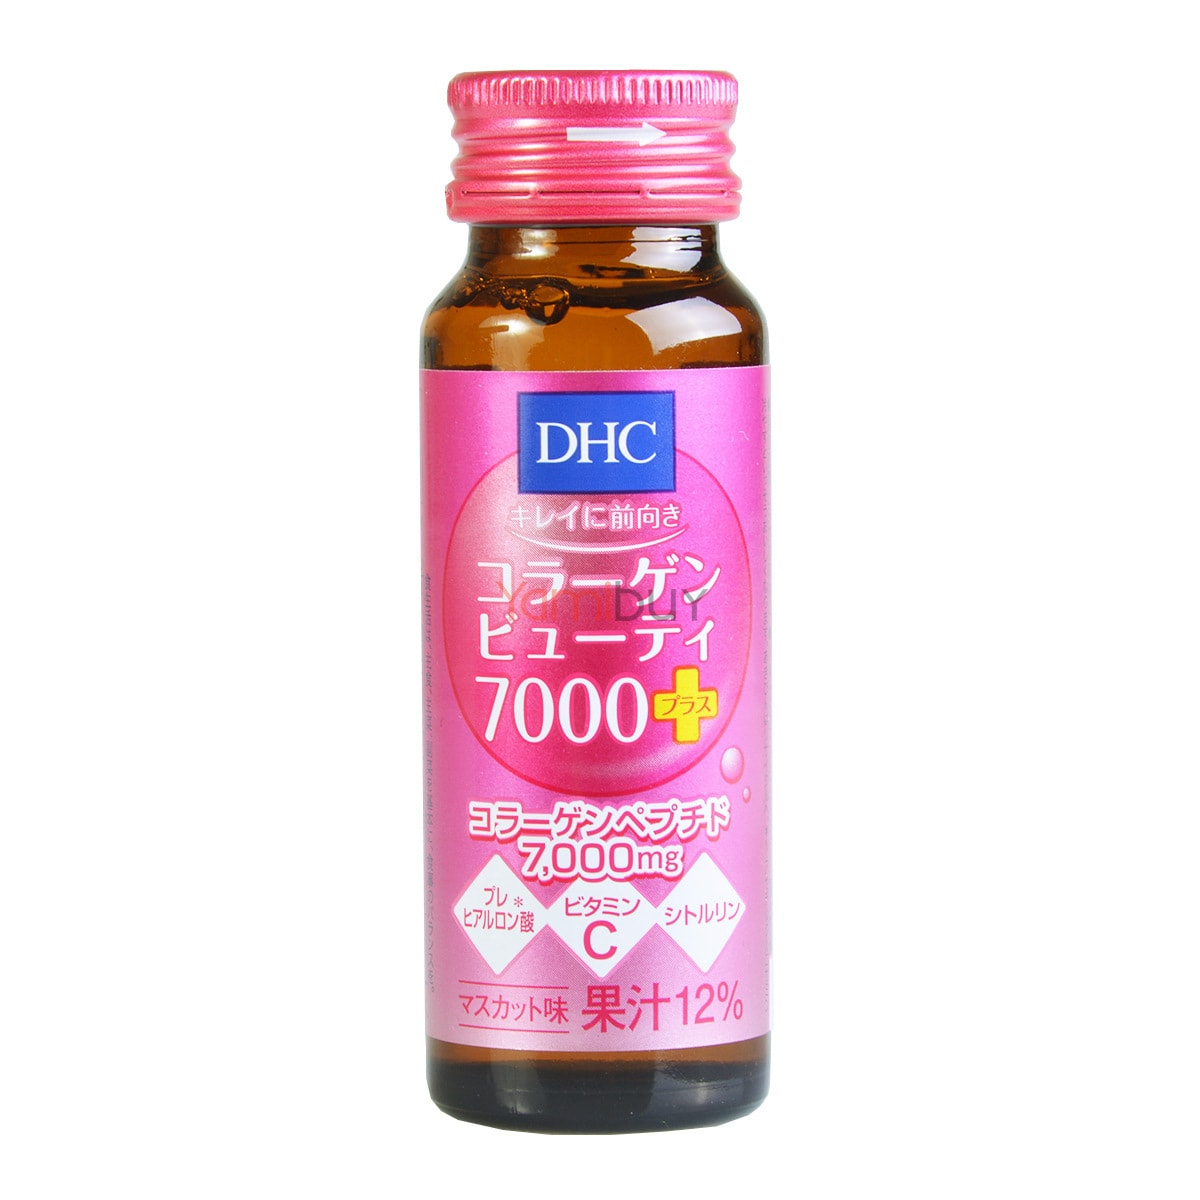 Yamibuy.com:Customer reviews:DHC Collagen Beauty Supplement Drink 7000mg 50ml